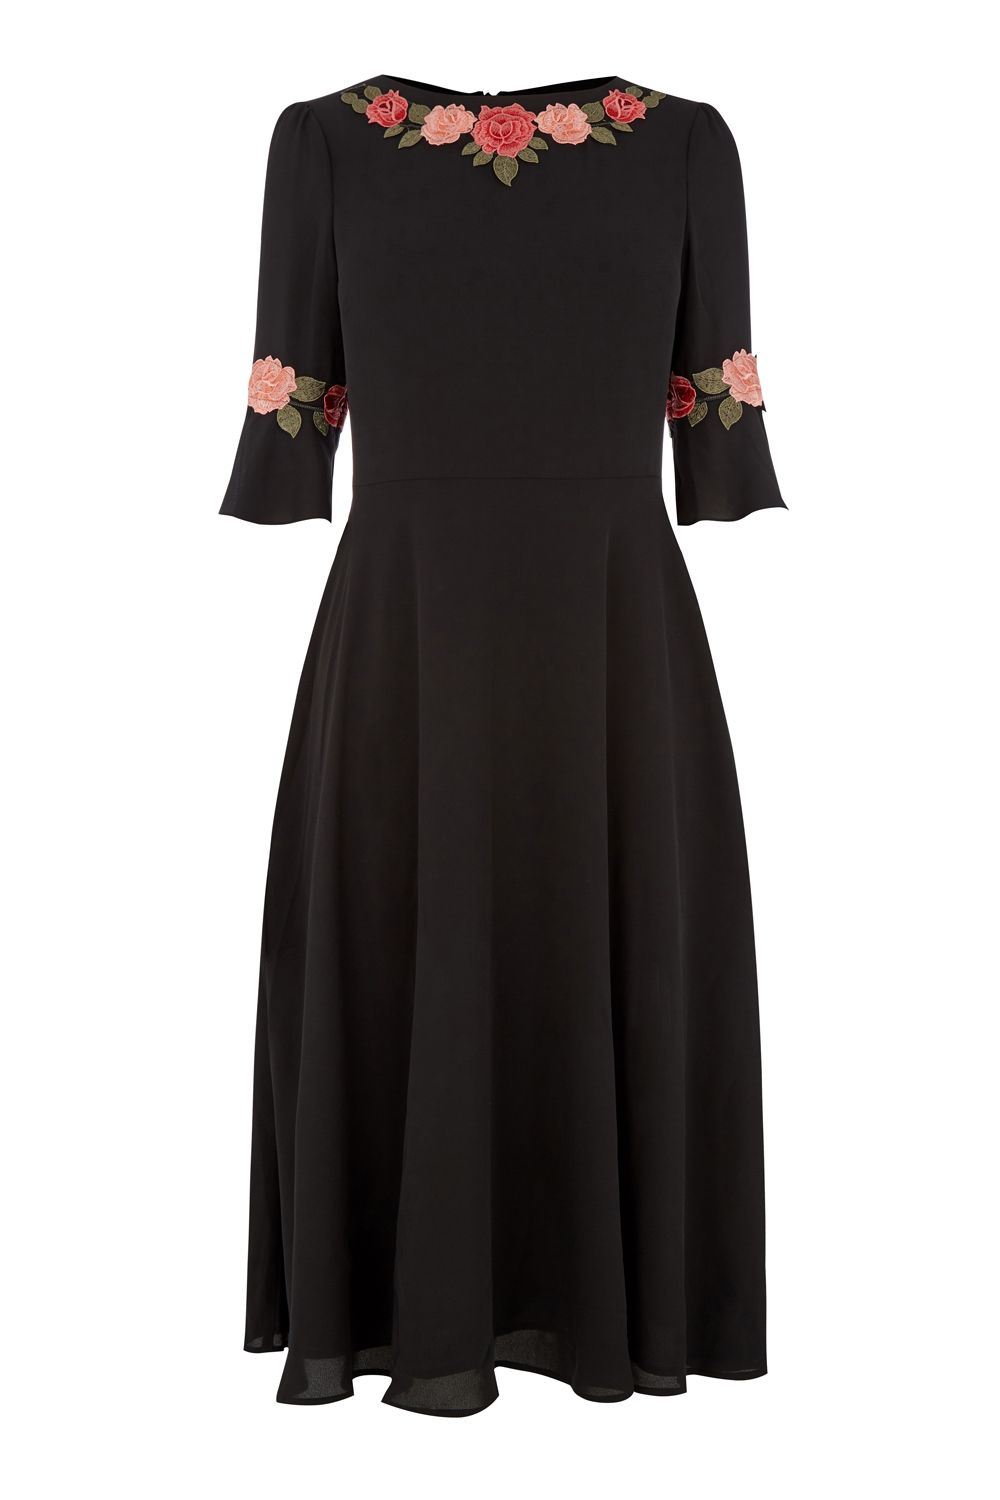 Oasis Fluted Sleeve Midi Dress, Black